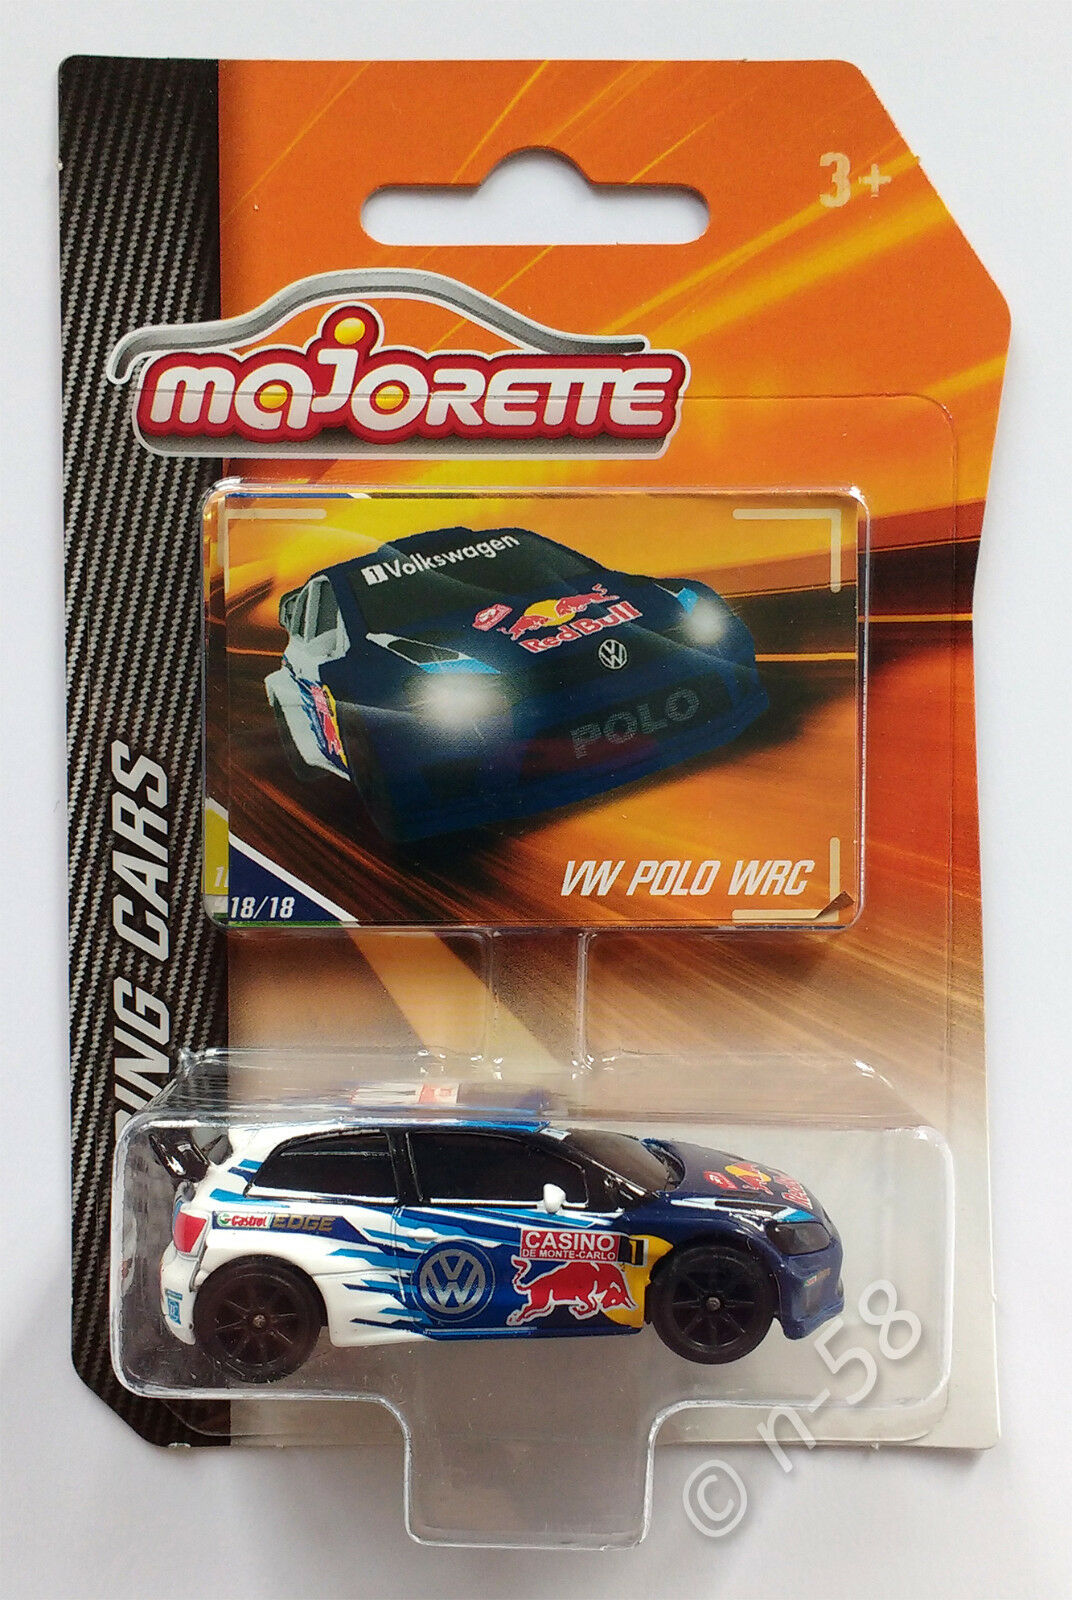 Majorette Racing Cars  VW POLO WRC  NEW OVP MINT BOXED, Motorsport Red Bull